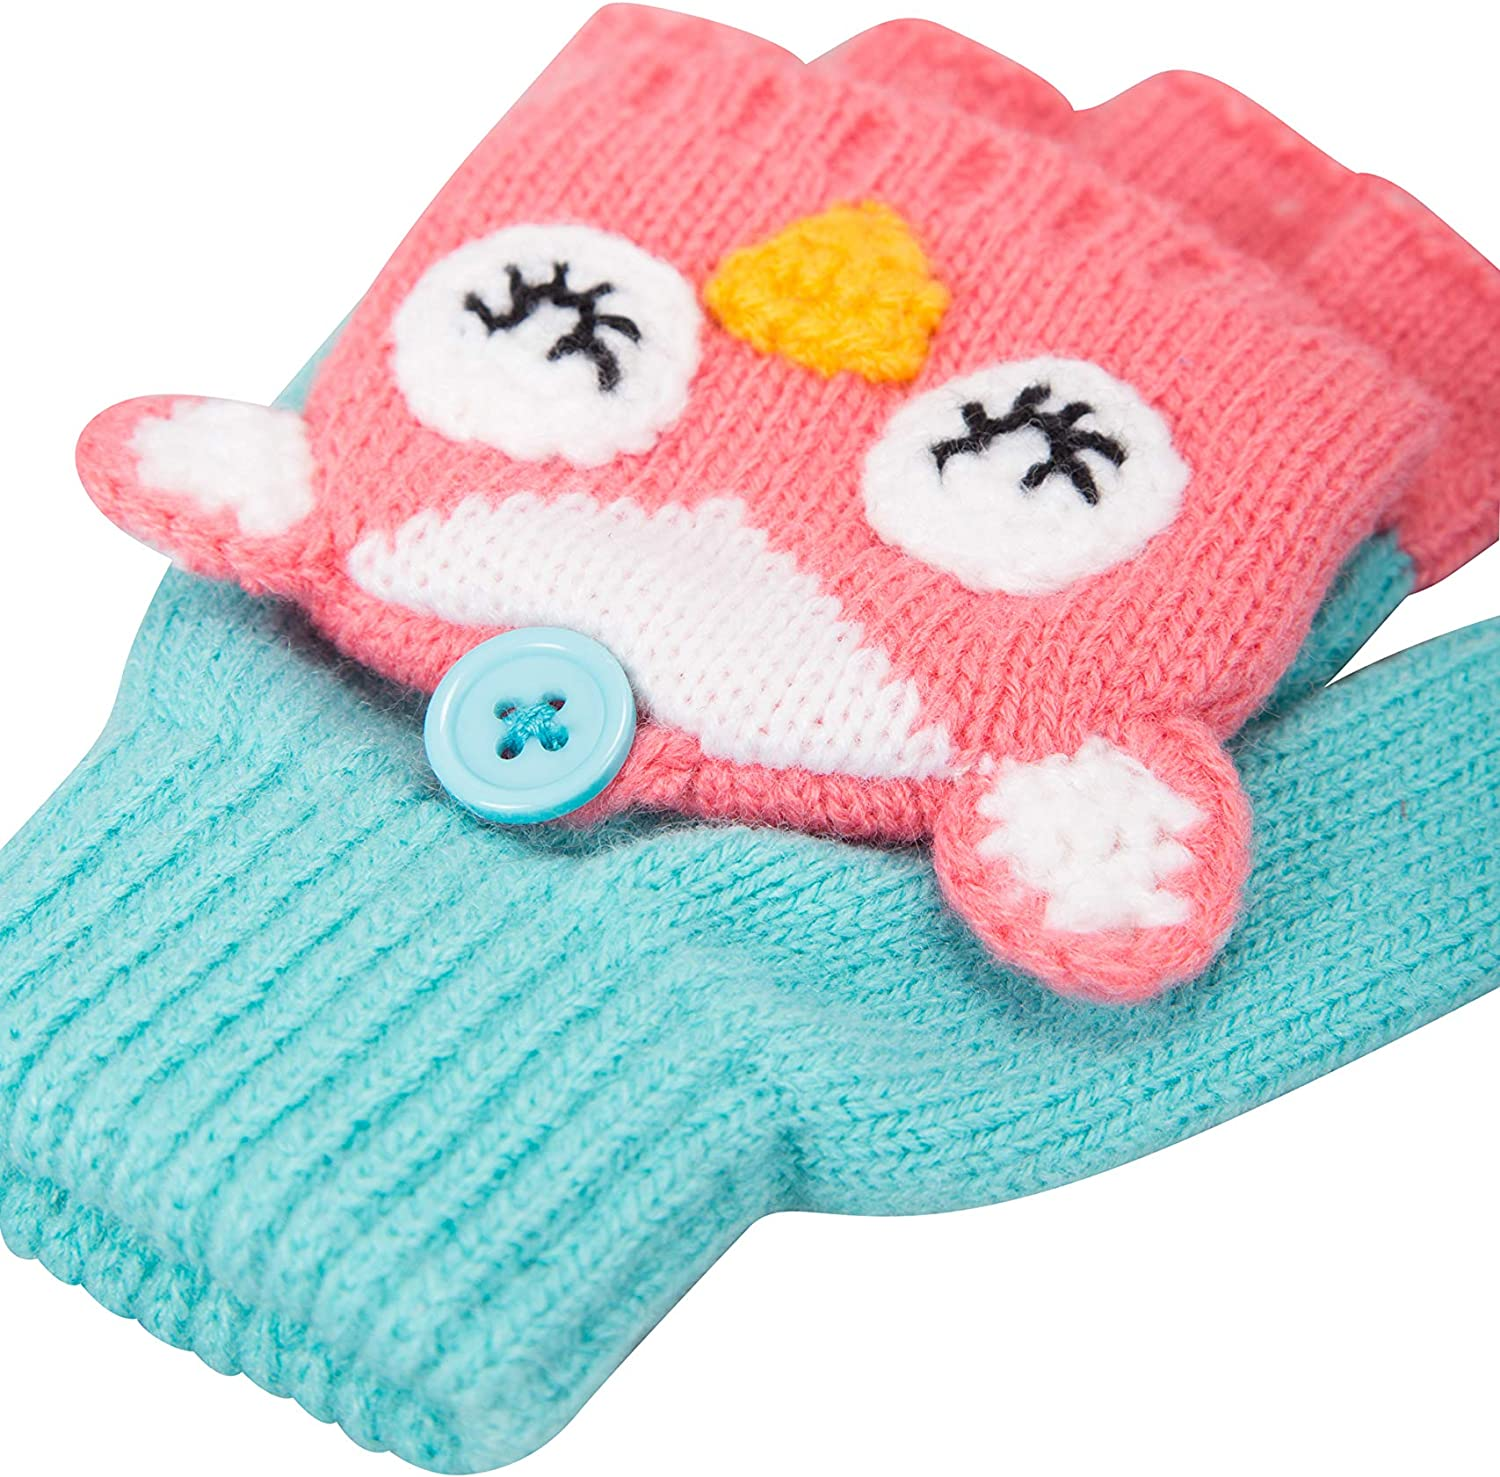 Cosy Childrens Glove For Camping Mountain Warehouse Owl Knitted Kids Gloves Warm Winter Accessory Outdoor Hiking Mitten Flaps Character Hand Gloves